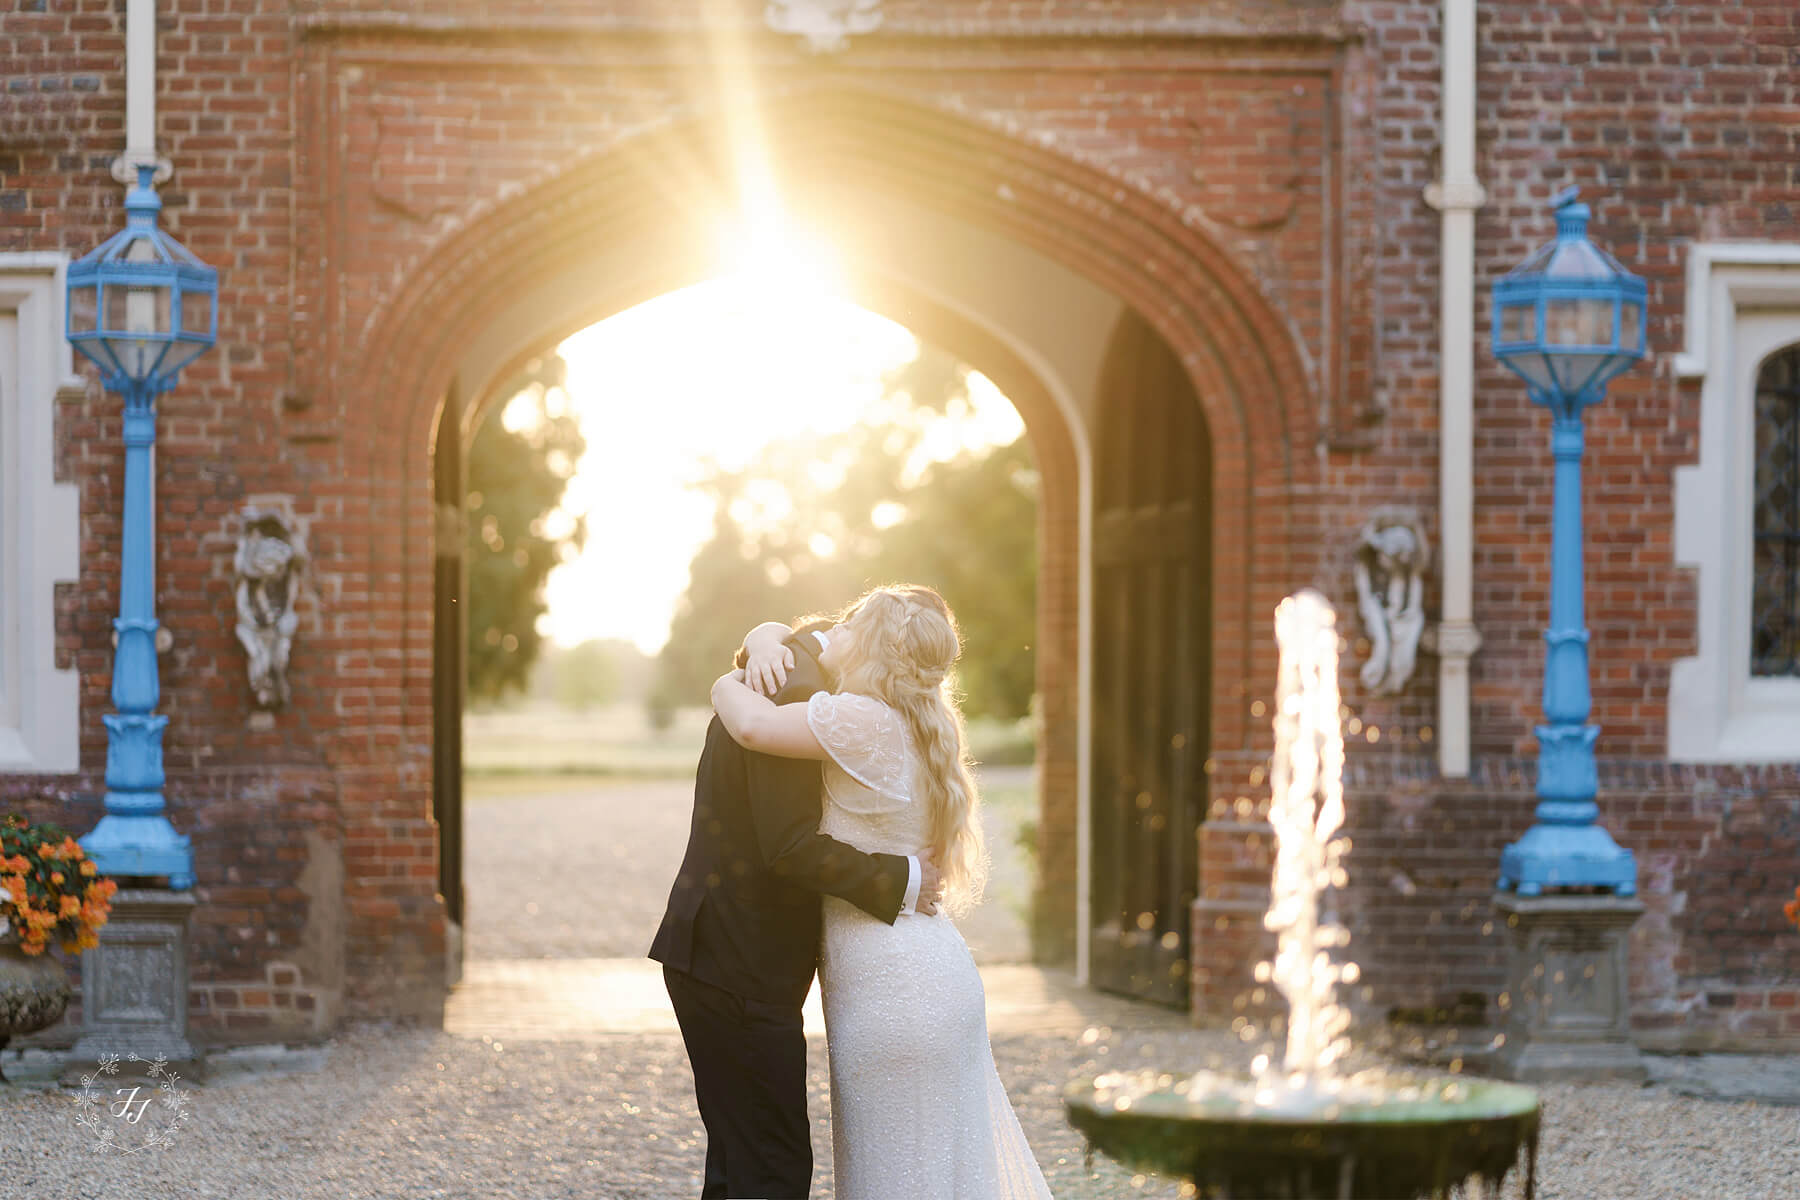 Sunset in the courtyard at Gosfield Hall